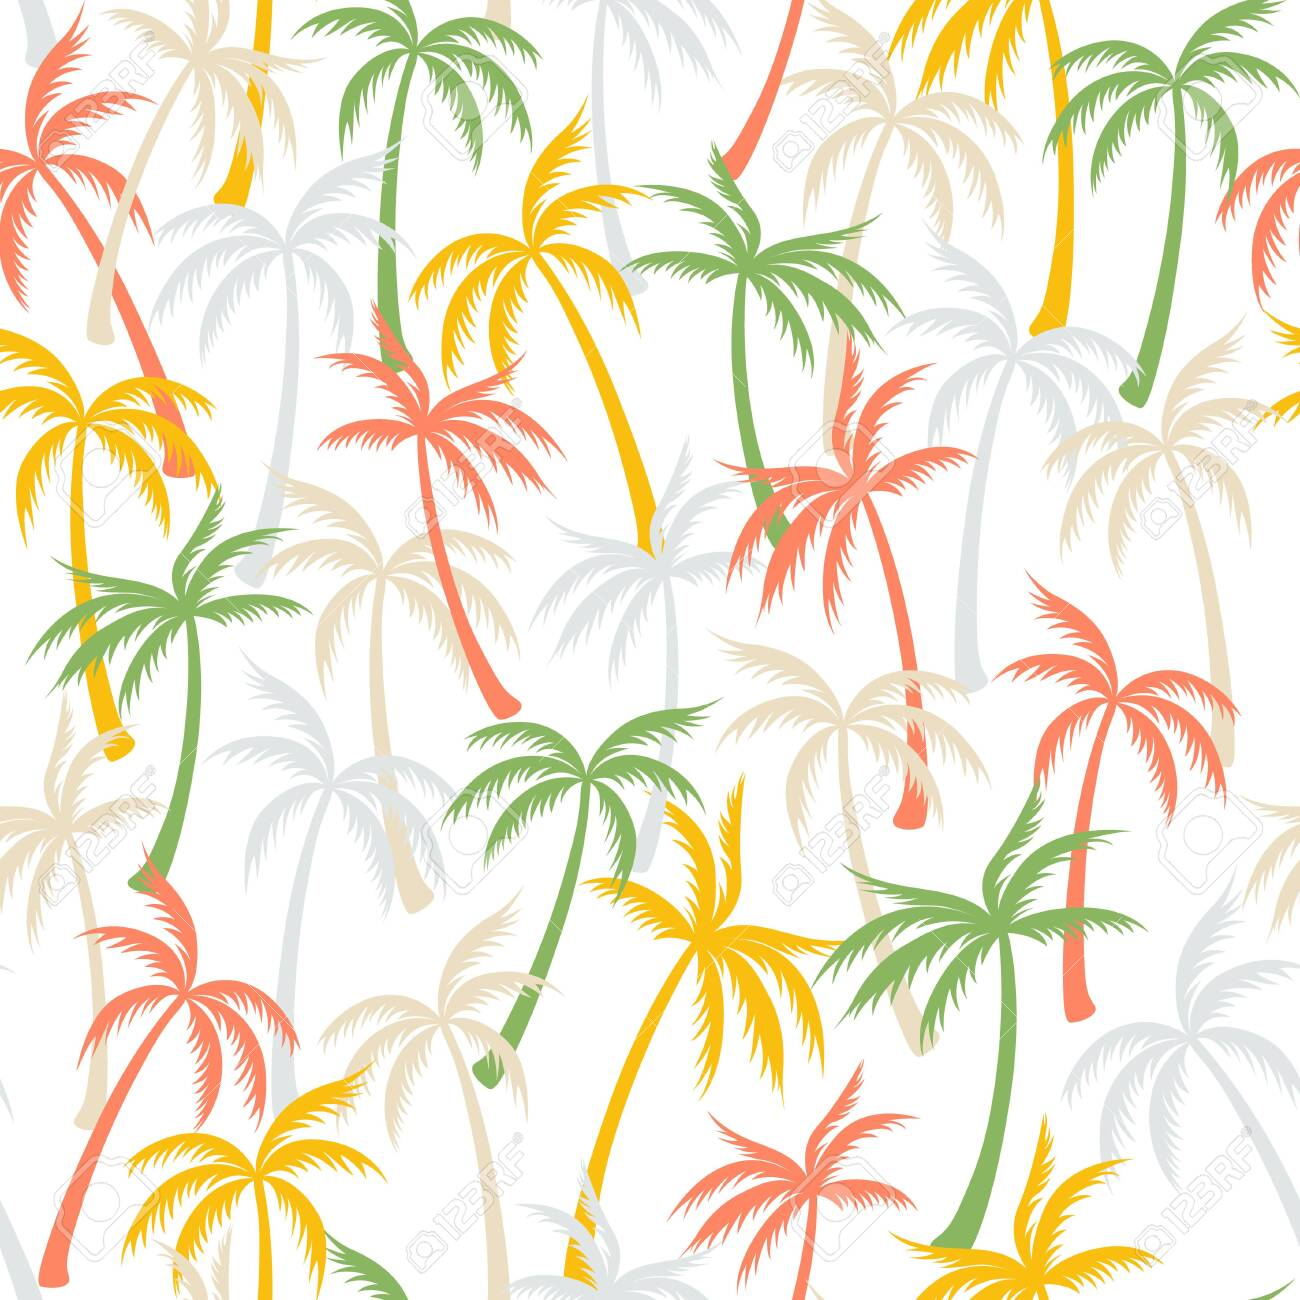 Coconut palm tree pattern textile seamless tropical forest background